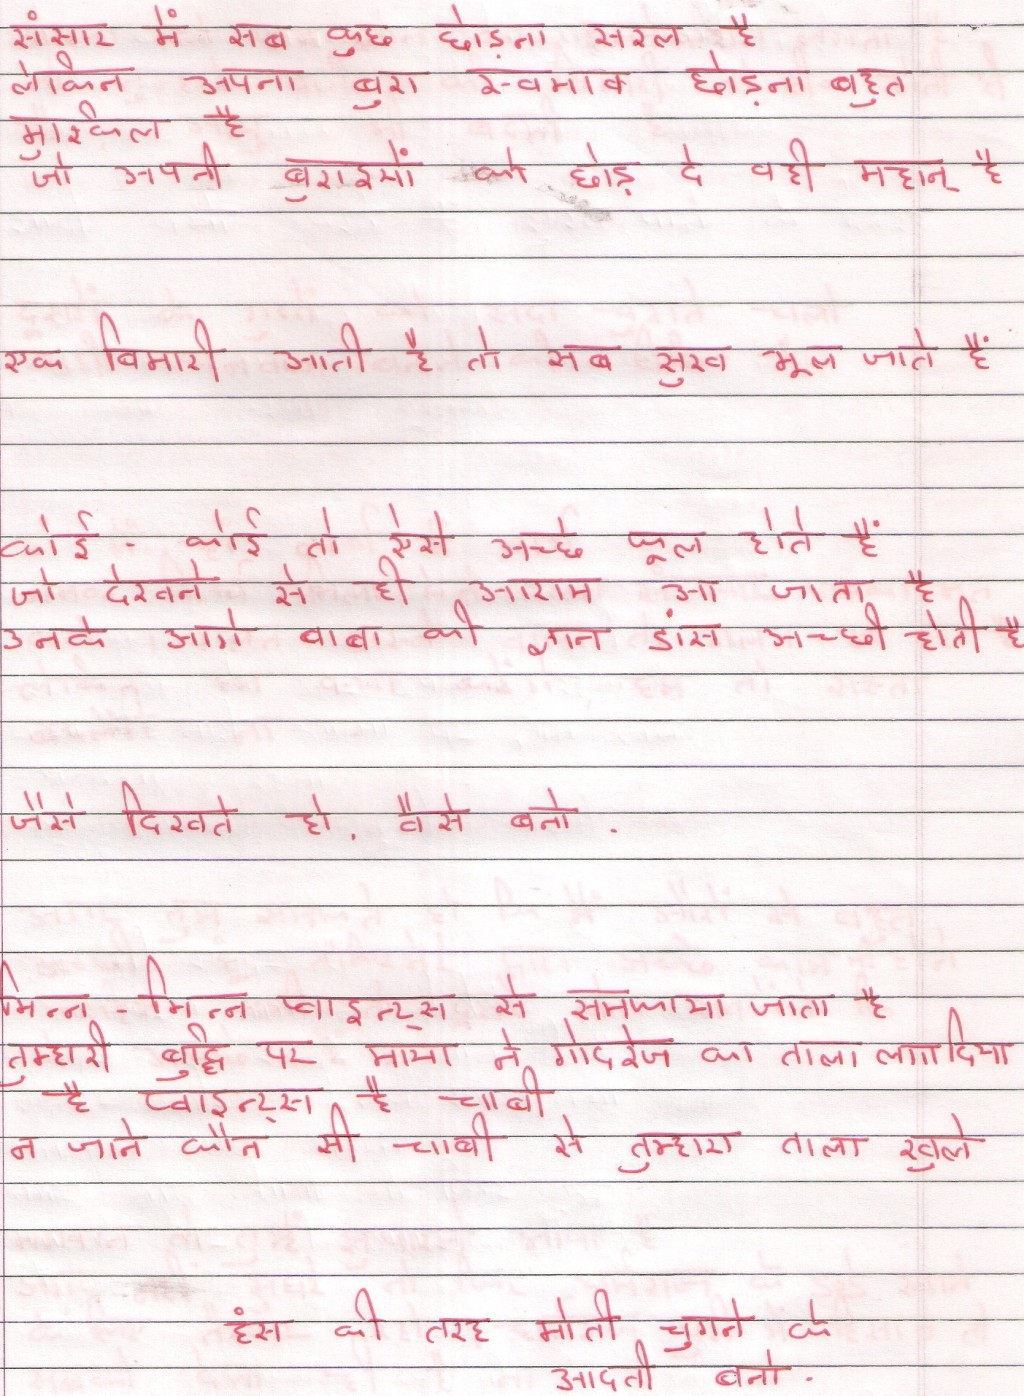 007 Essay Example On Unity In Hindi Short Stories Story Writing Centre Model Creative Spiritual One Liners Quotes Free Ebook Fascinating Importance Of Diversity National Large